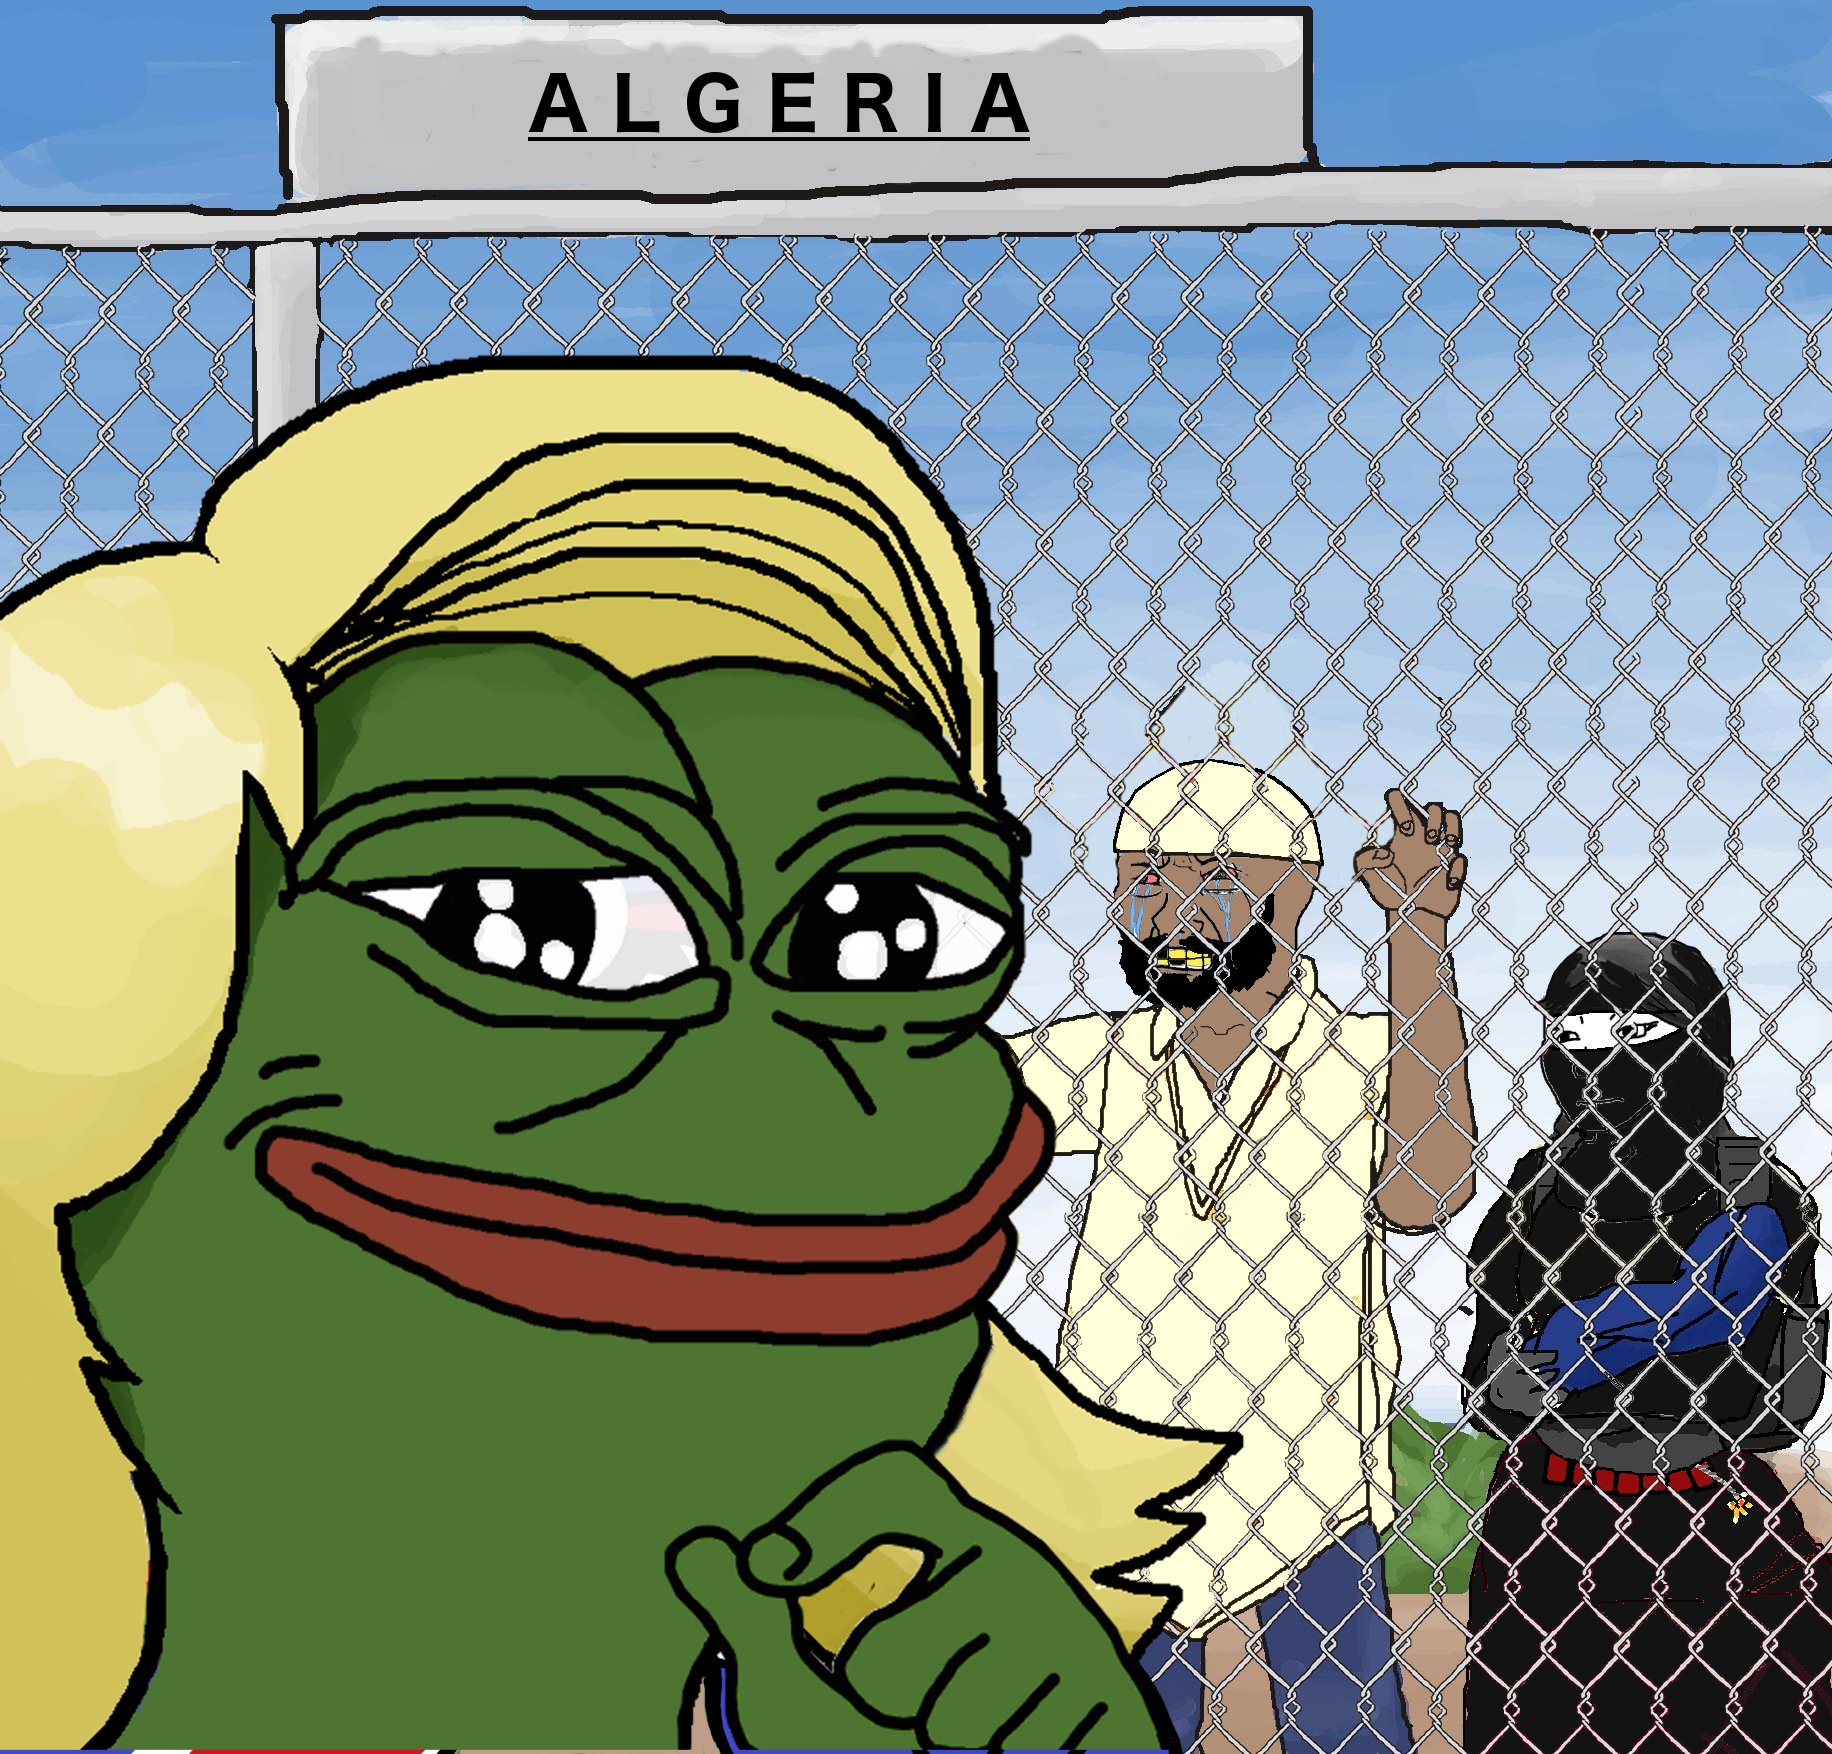 """We're gonna build a wall, and Algeria will pay for it"""